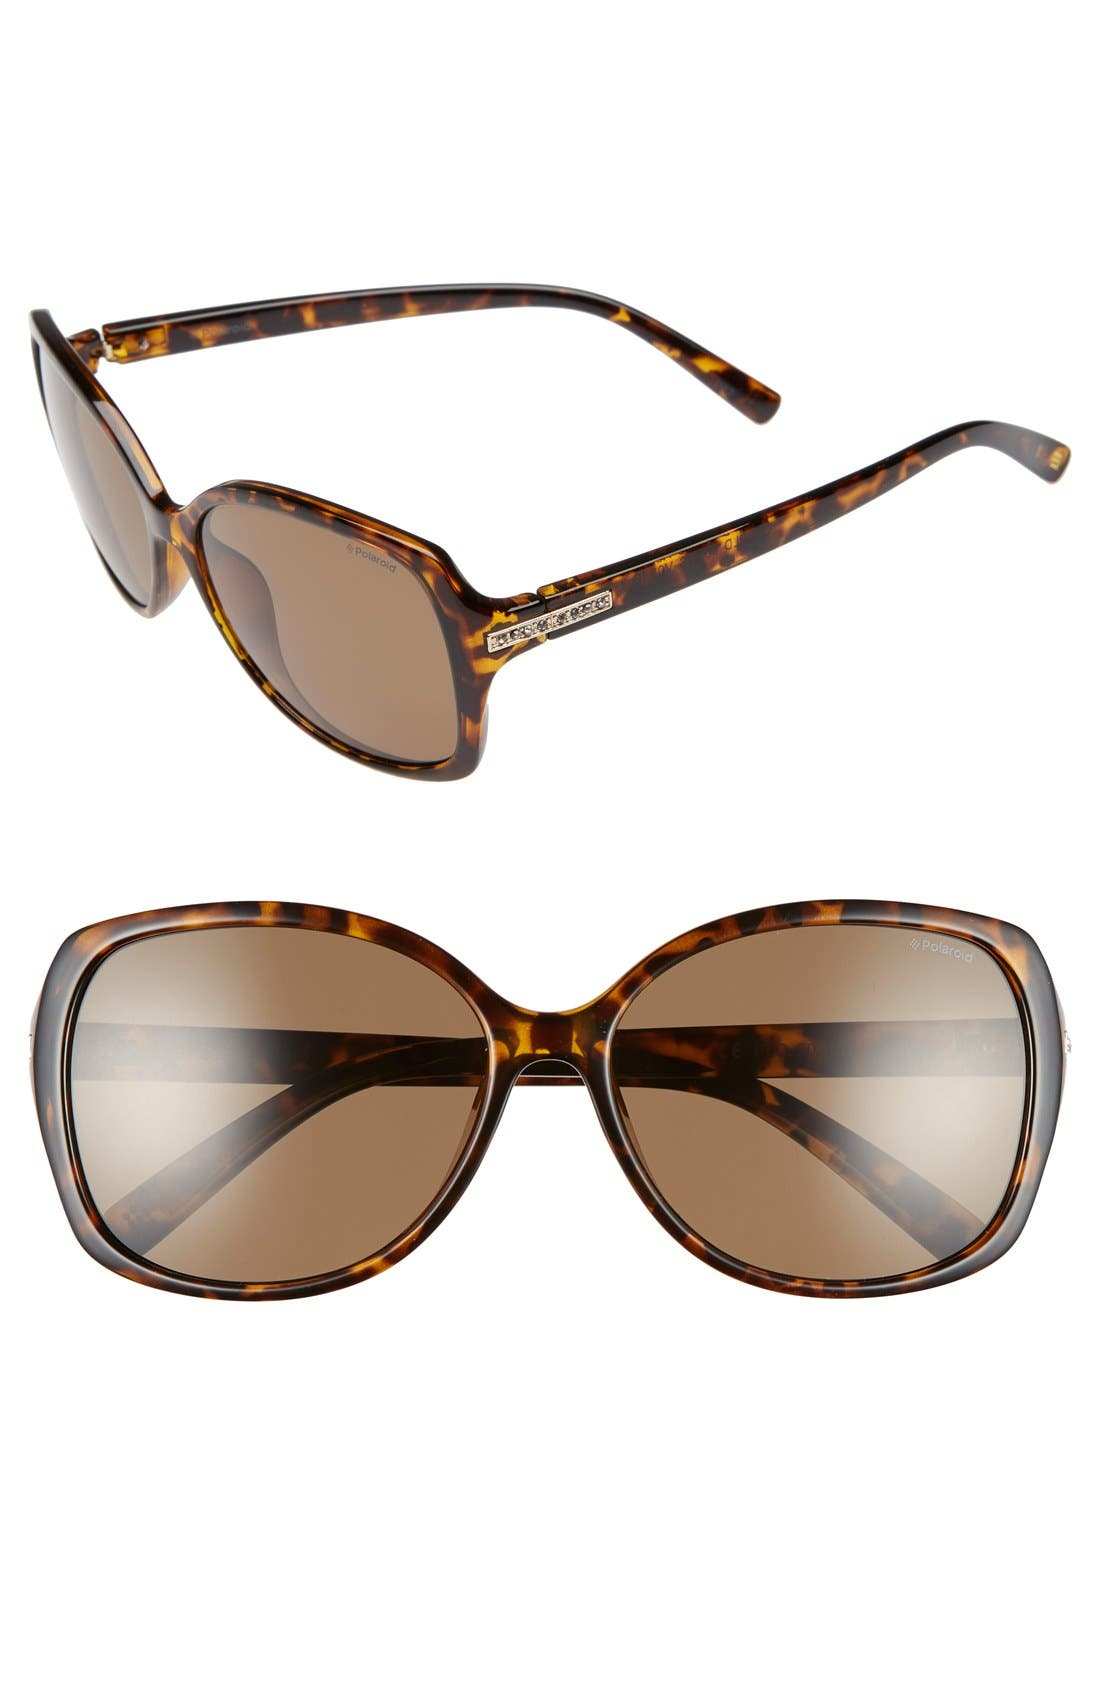 58mm Polarized Sunglasses,                             Main thumbnail 1, color,                             HAVANA/ BROWN POLARIZED